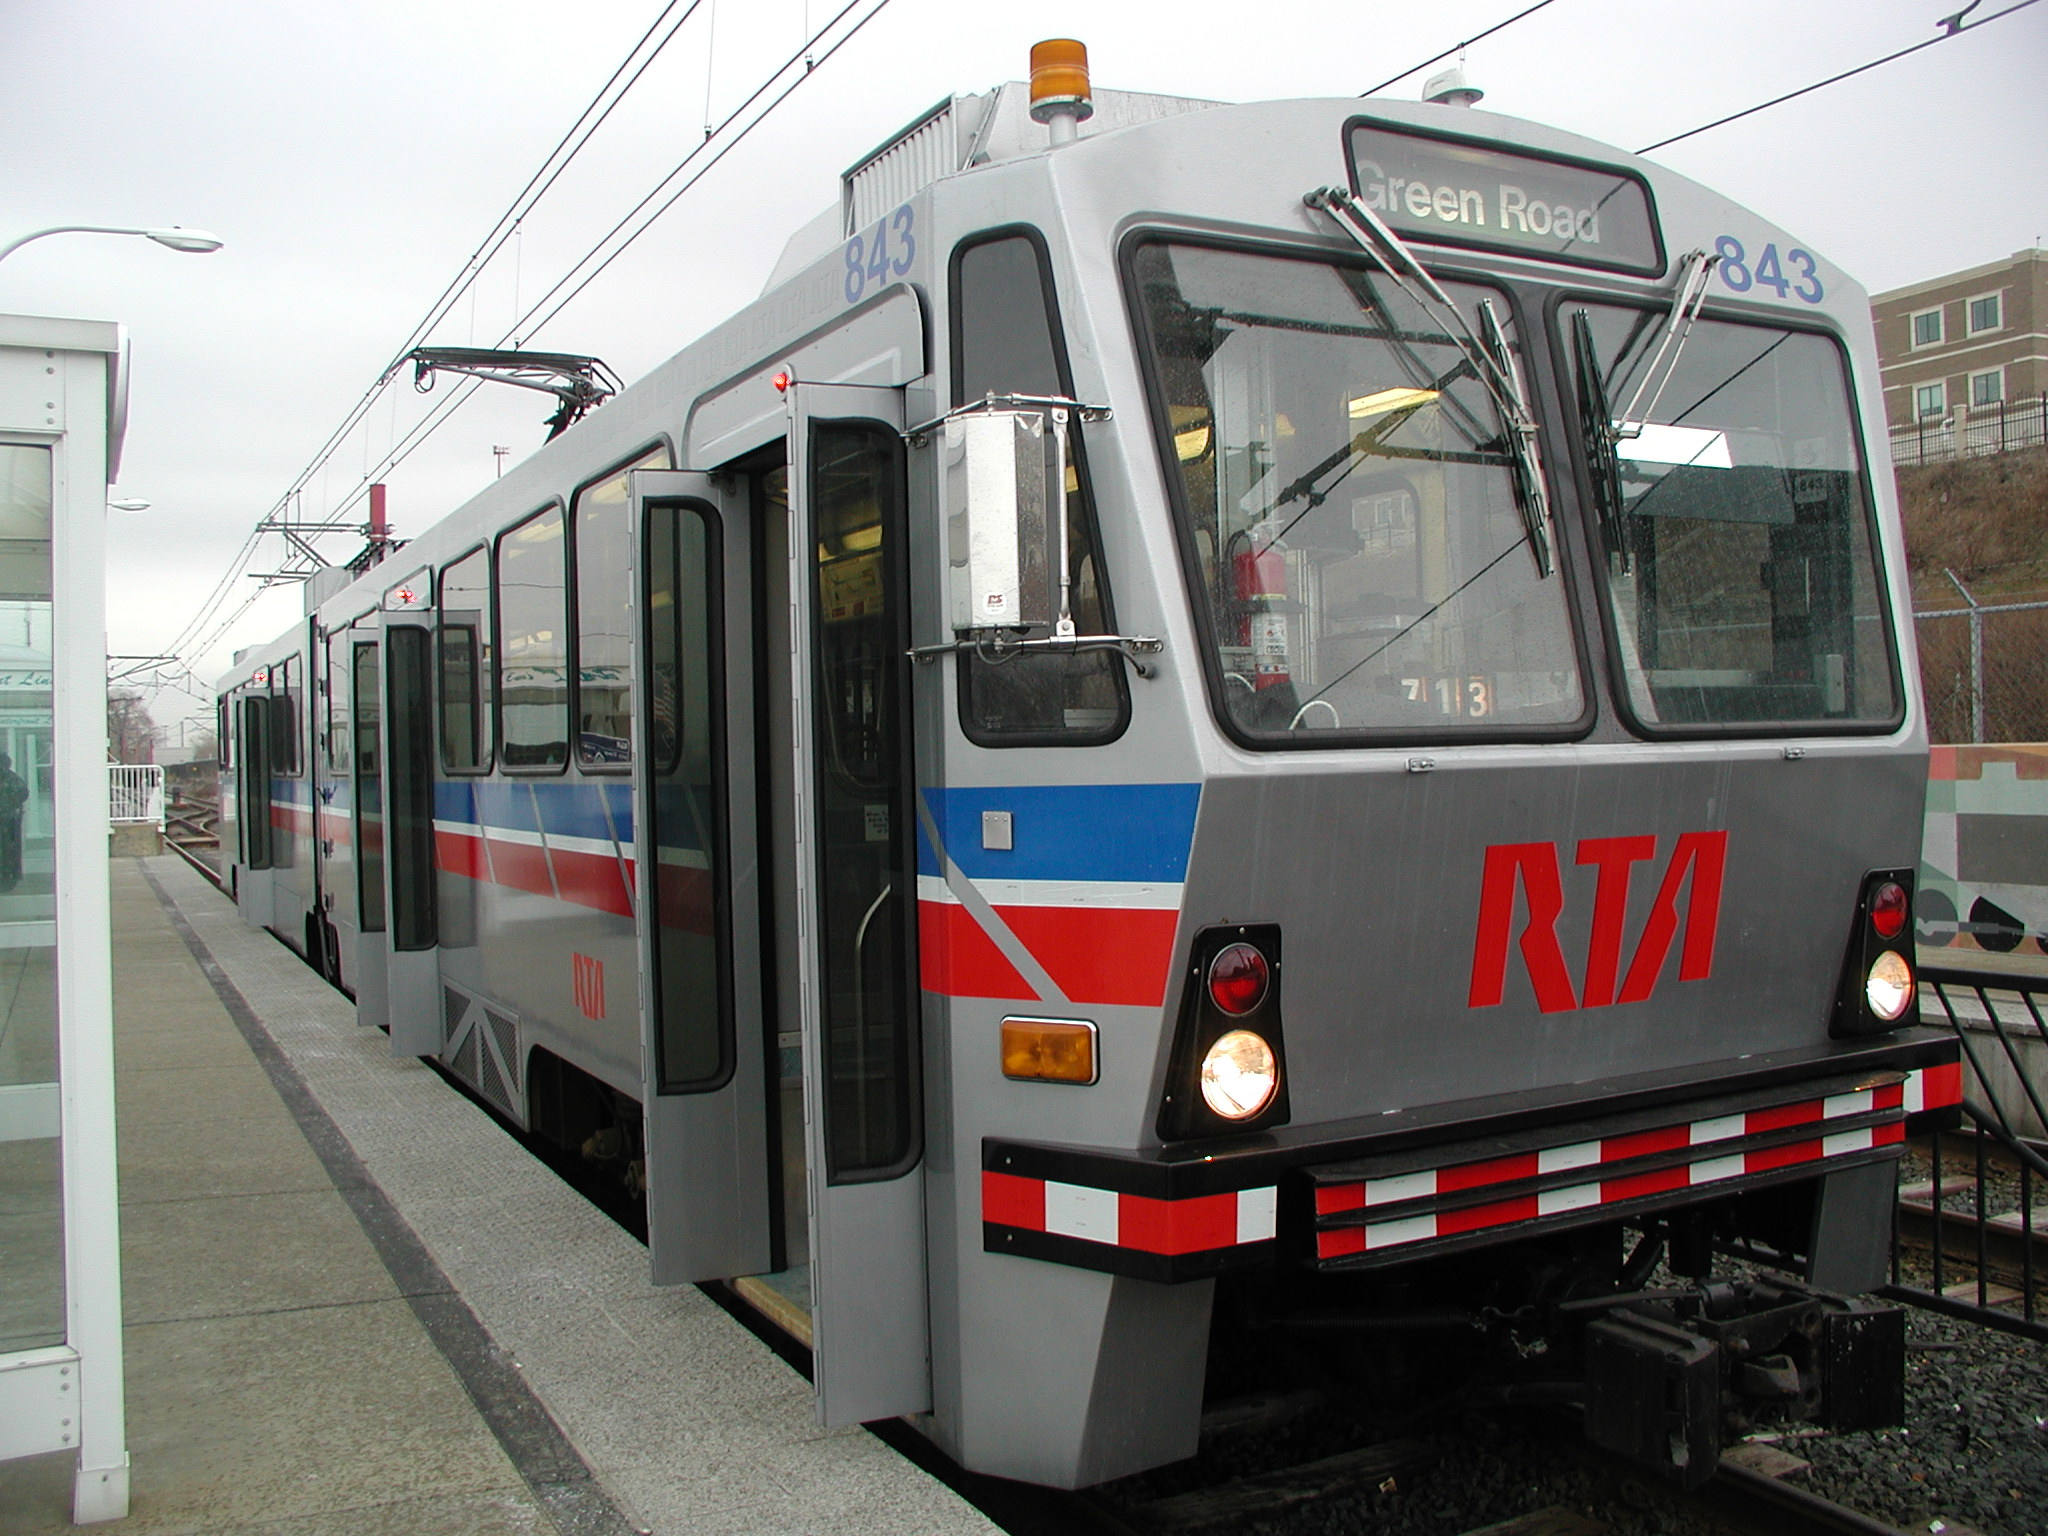 Greater Cleveland RTA train at platform